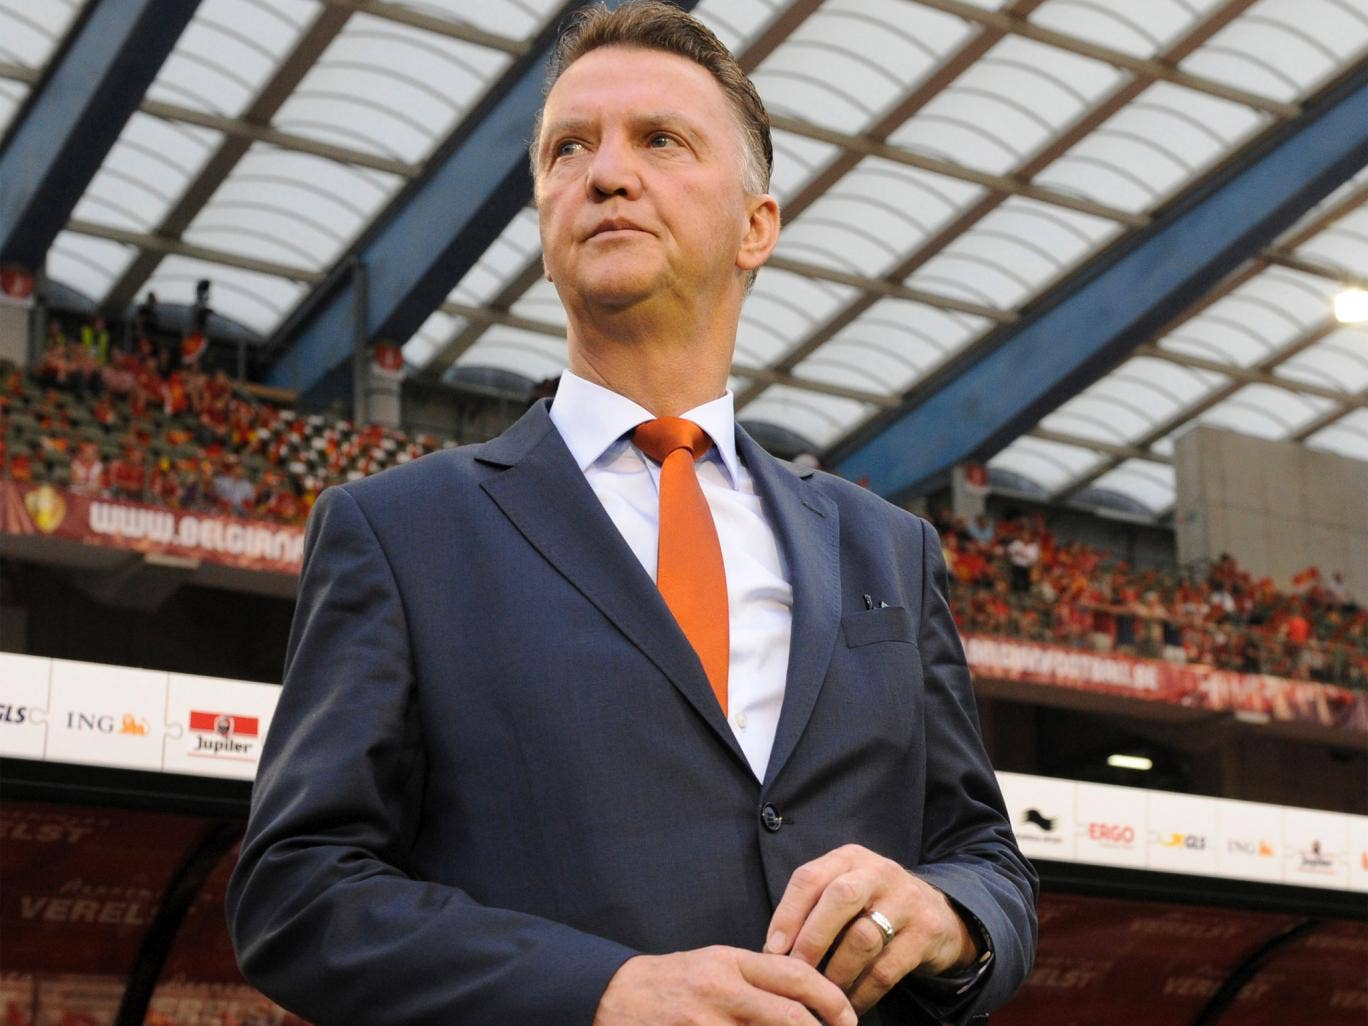 The Dutch FA does not want Louis van Gaal to be distracted by club matters before the World Cup